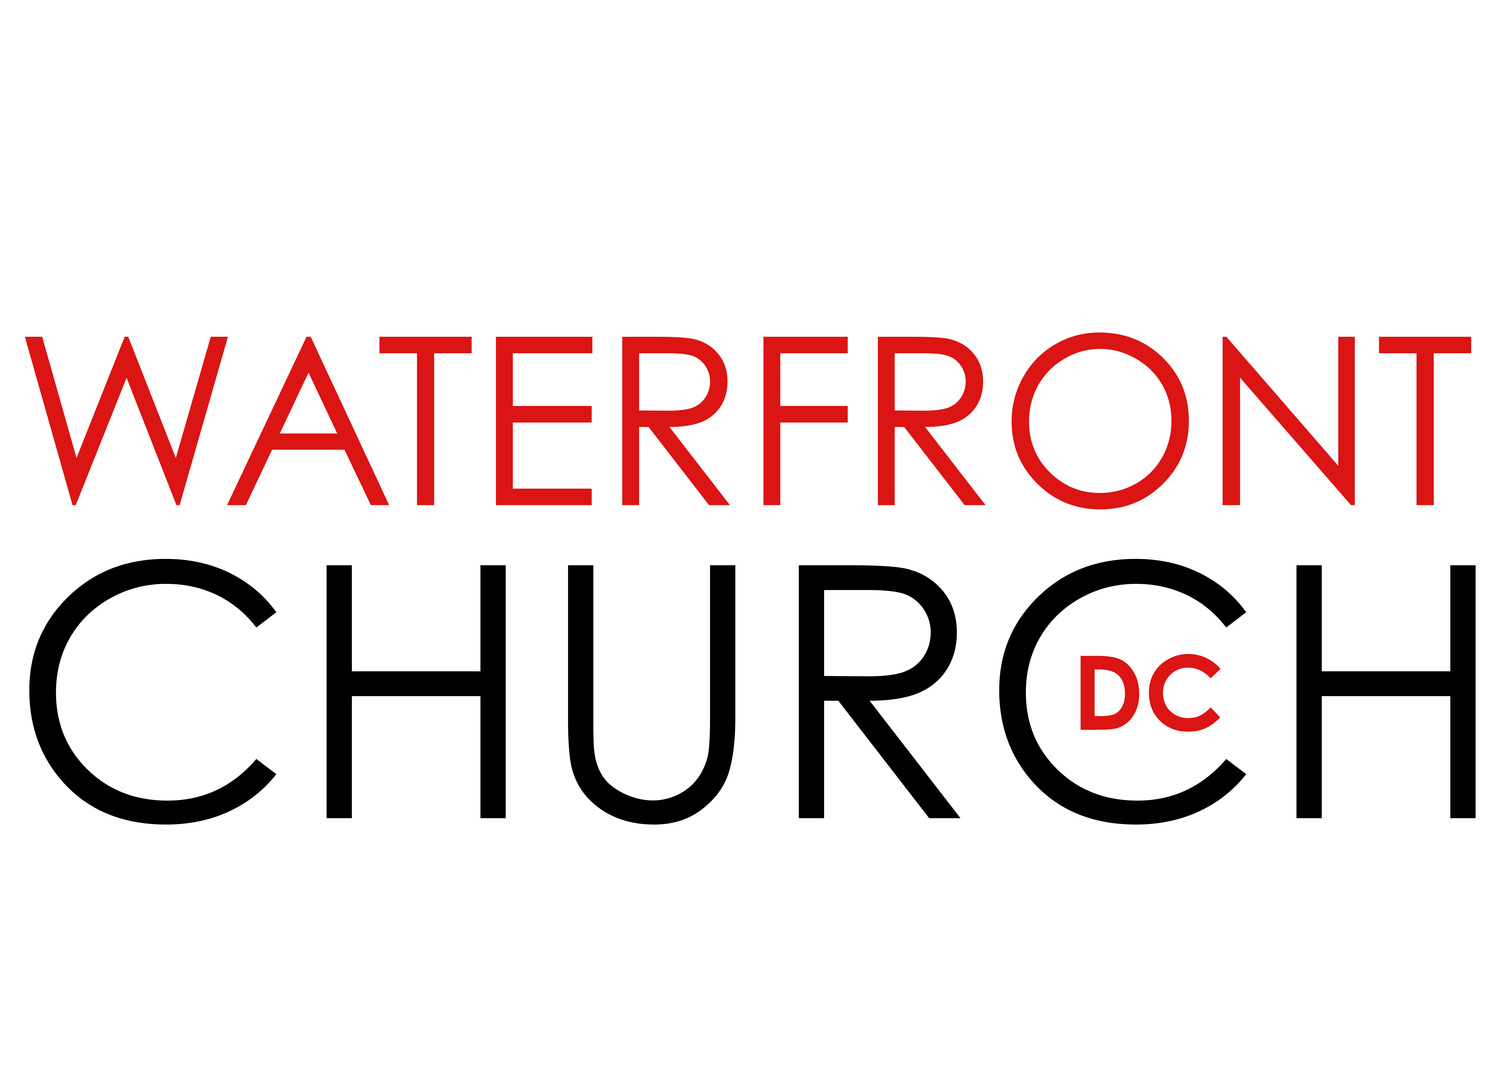 Waterfront Church